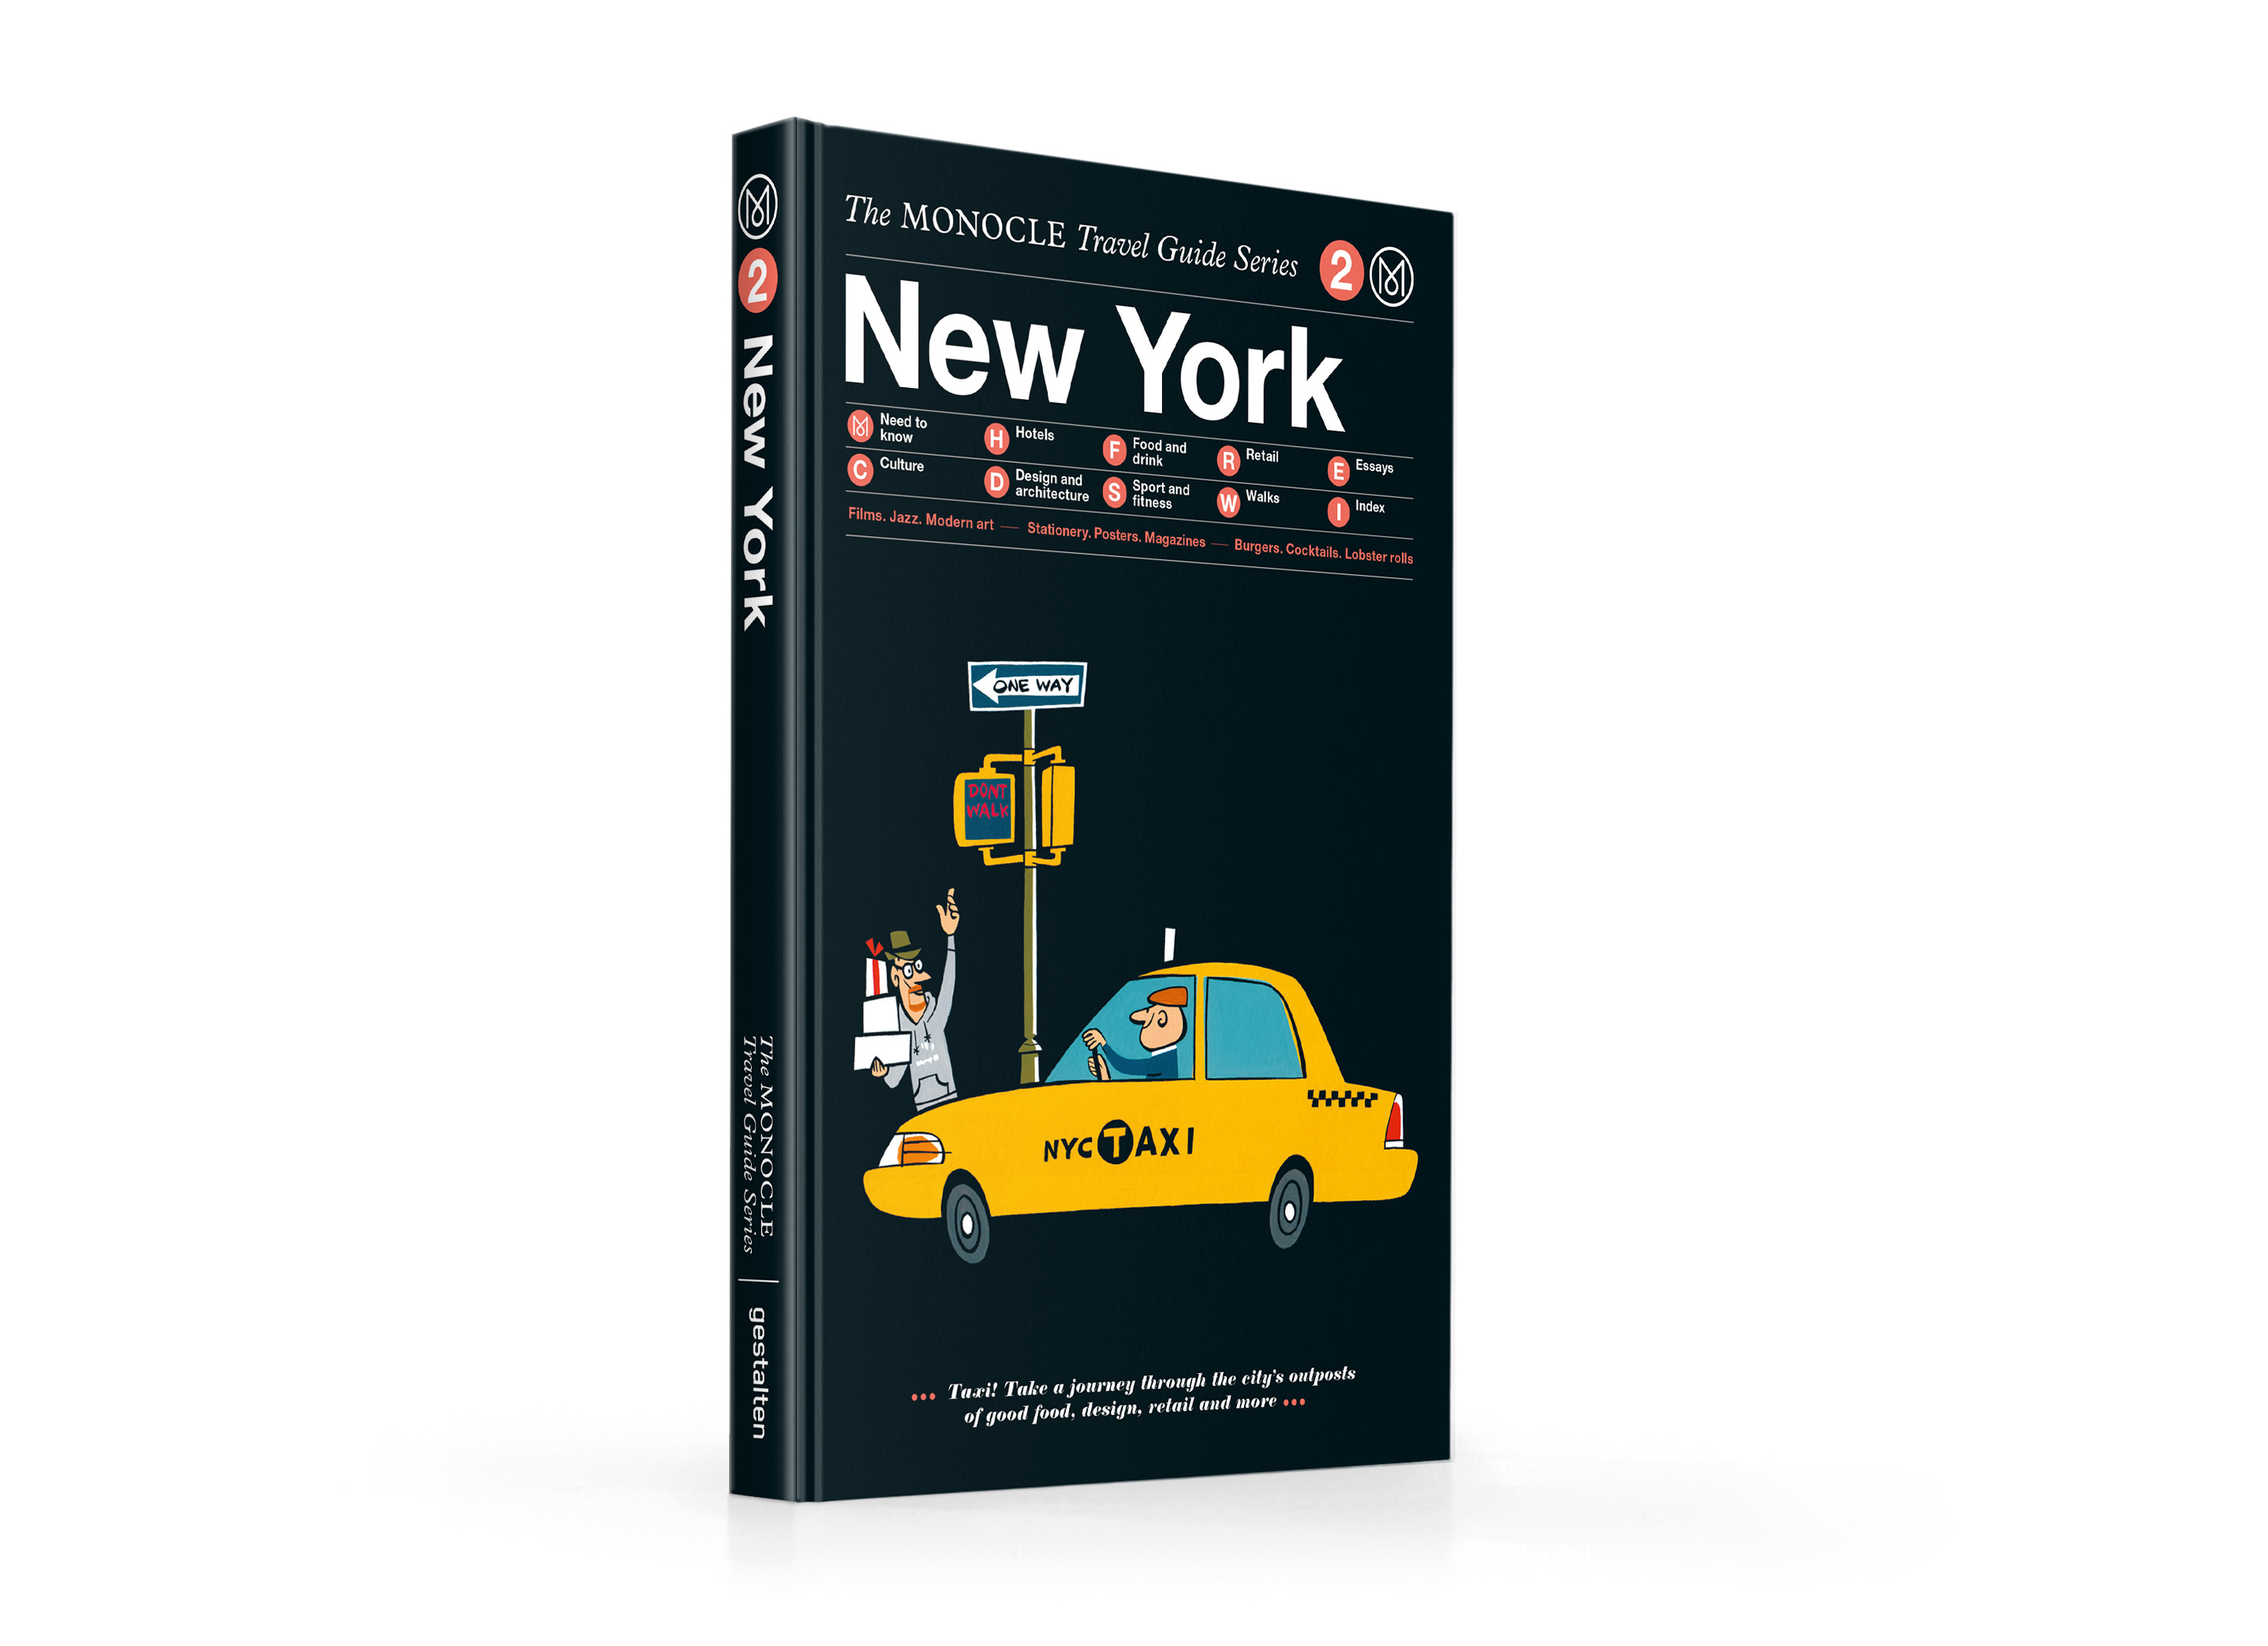 MONOCLE TRAVEL GUIDE: NEW YORK